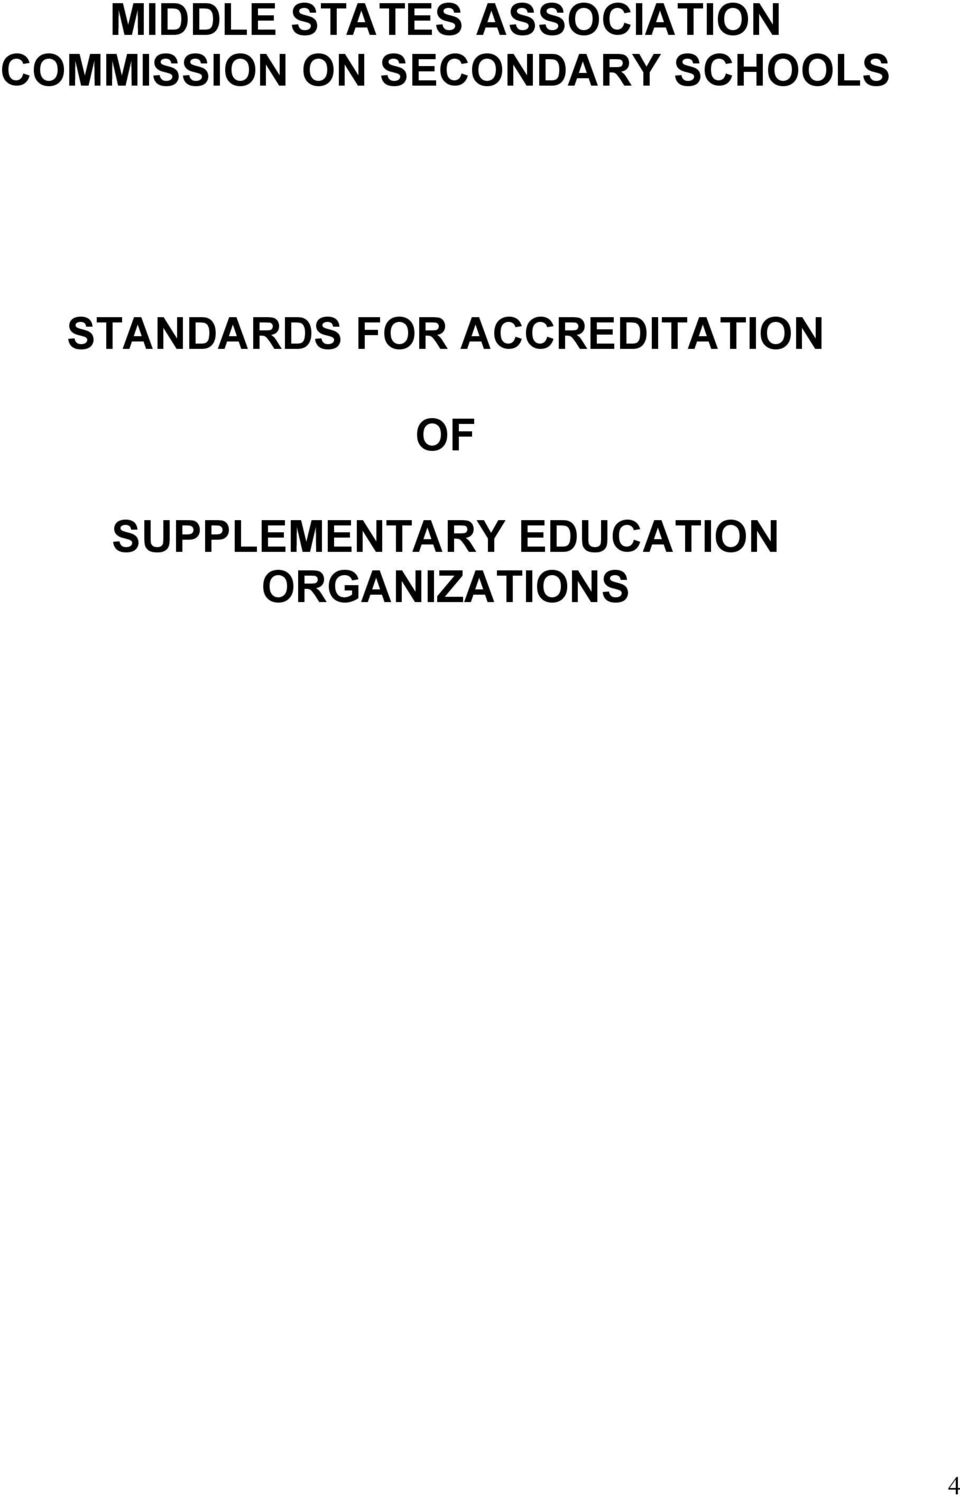 STANDARDS FOR ACCREDITATION OF